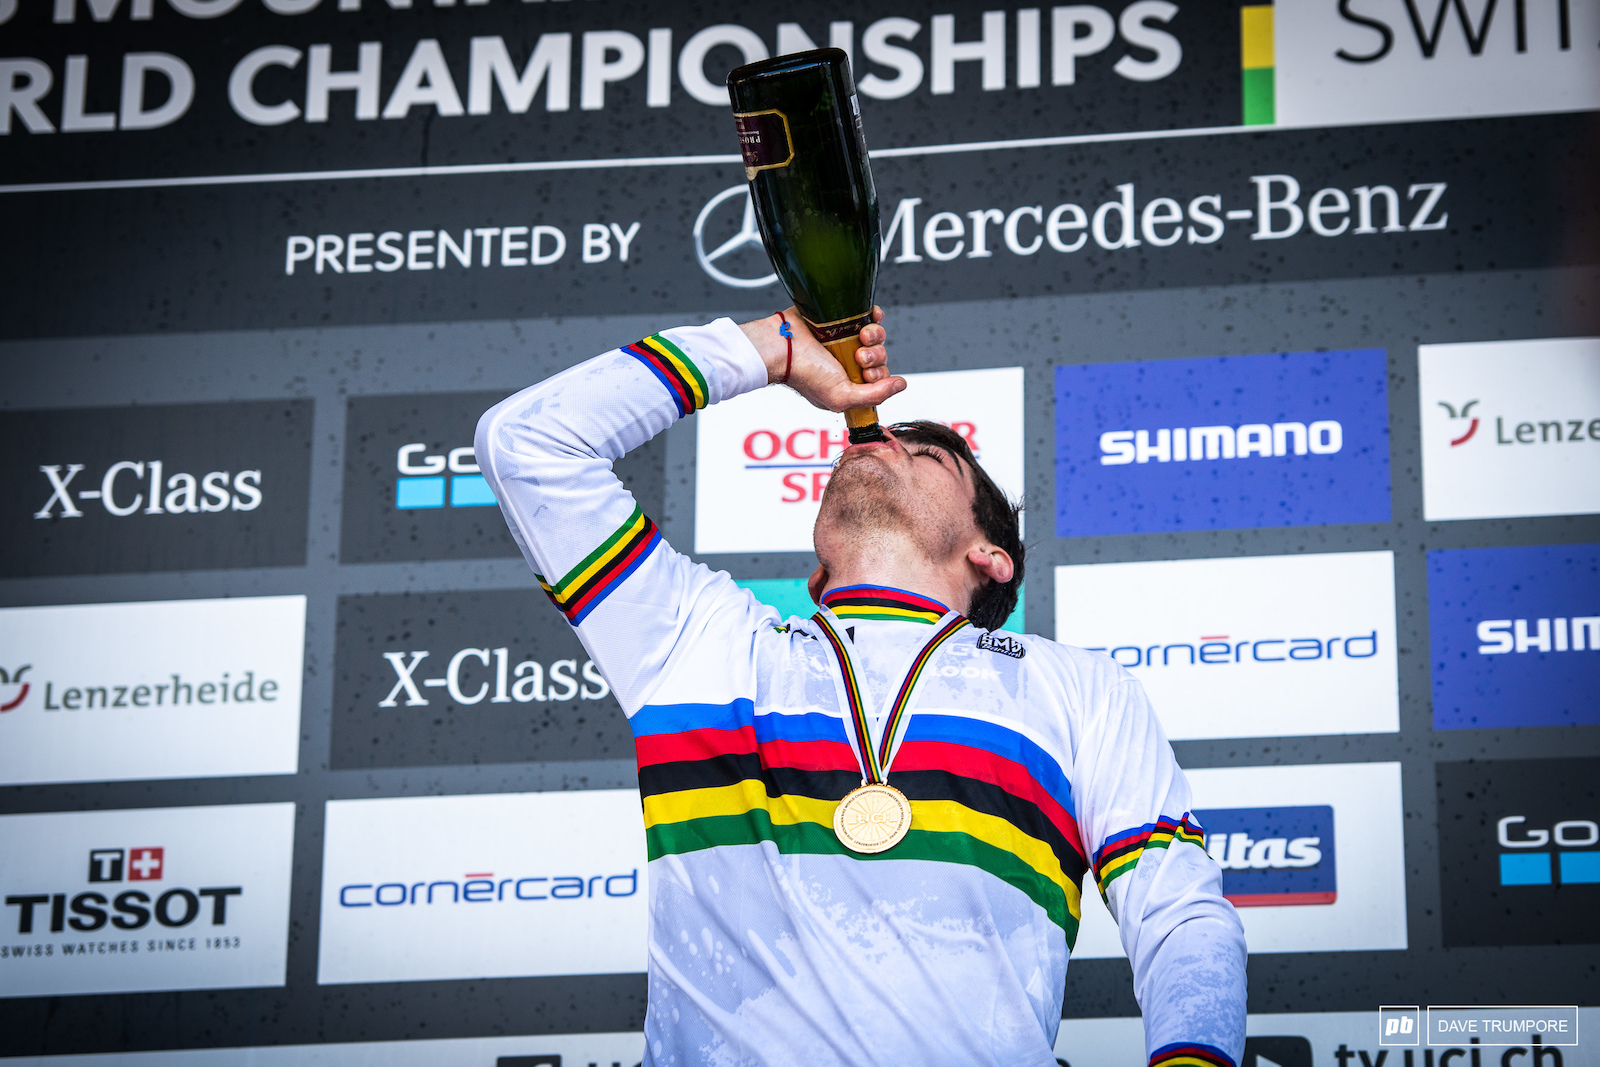 The third time being World Champ tastes as good as the first.